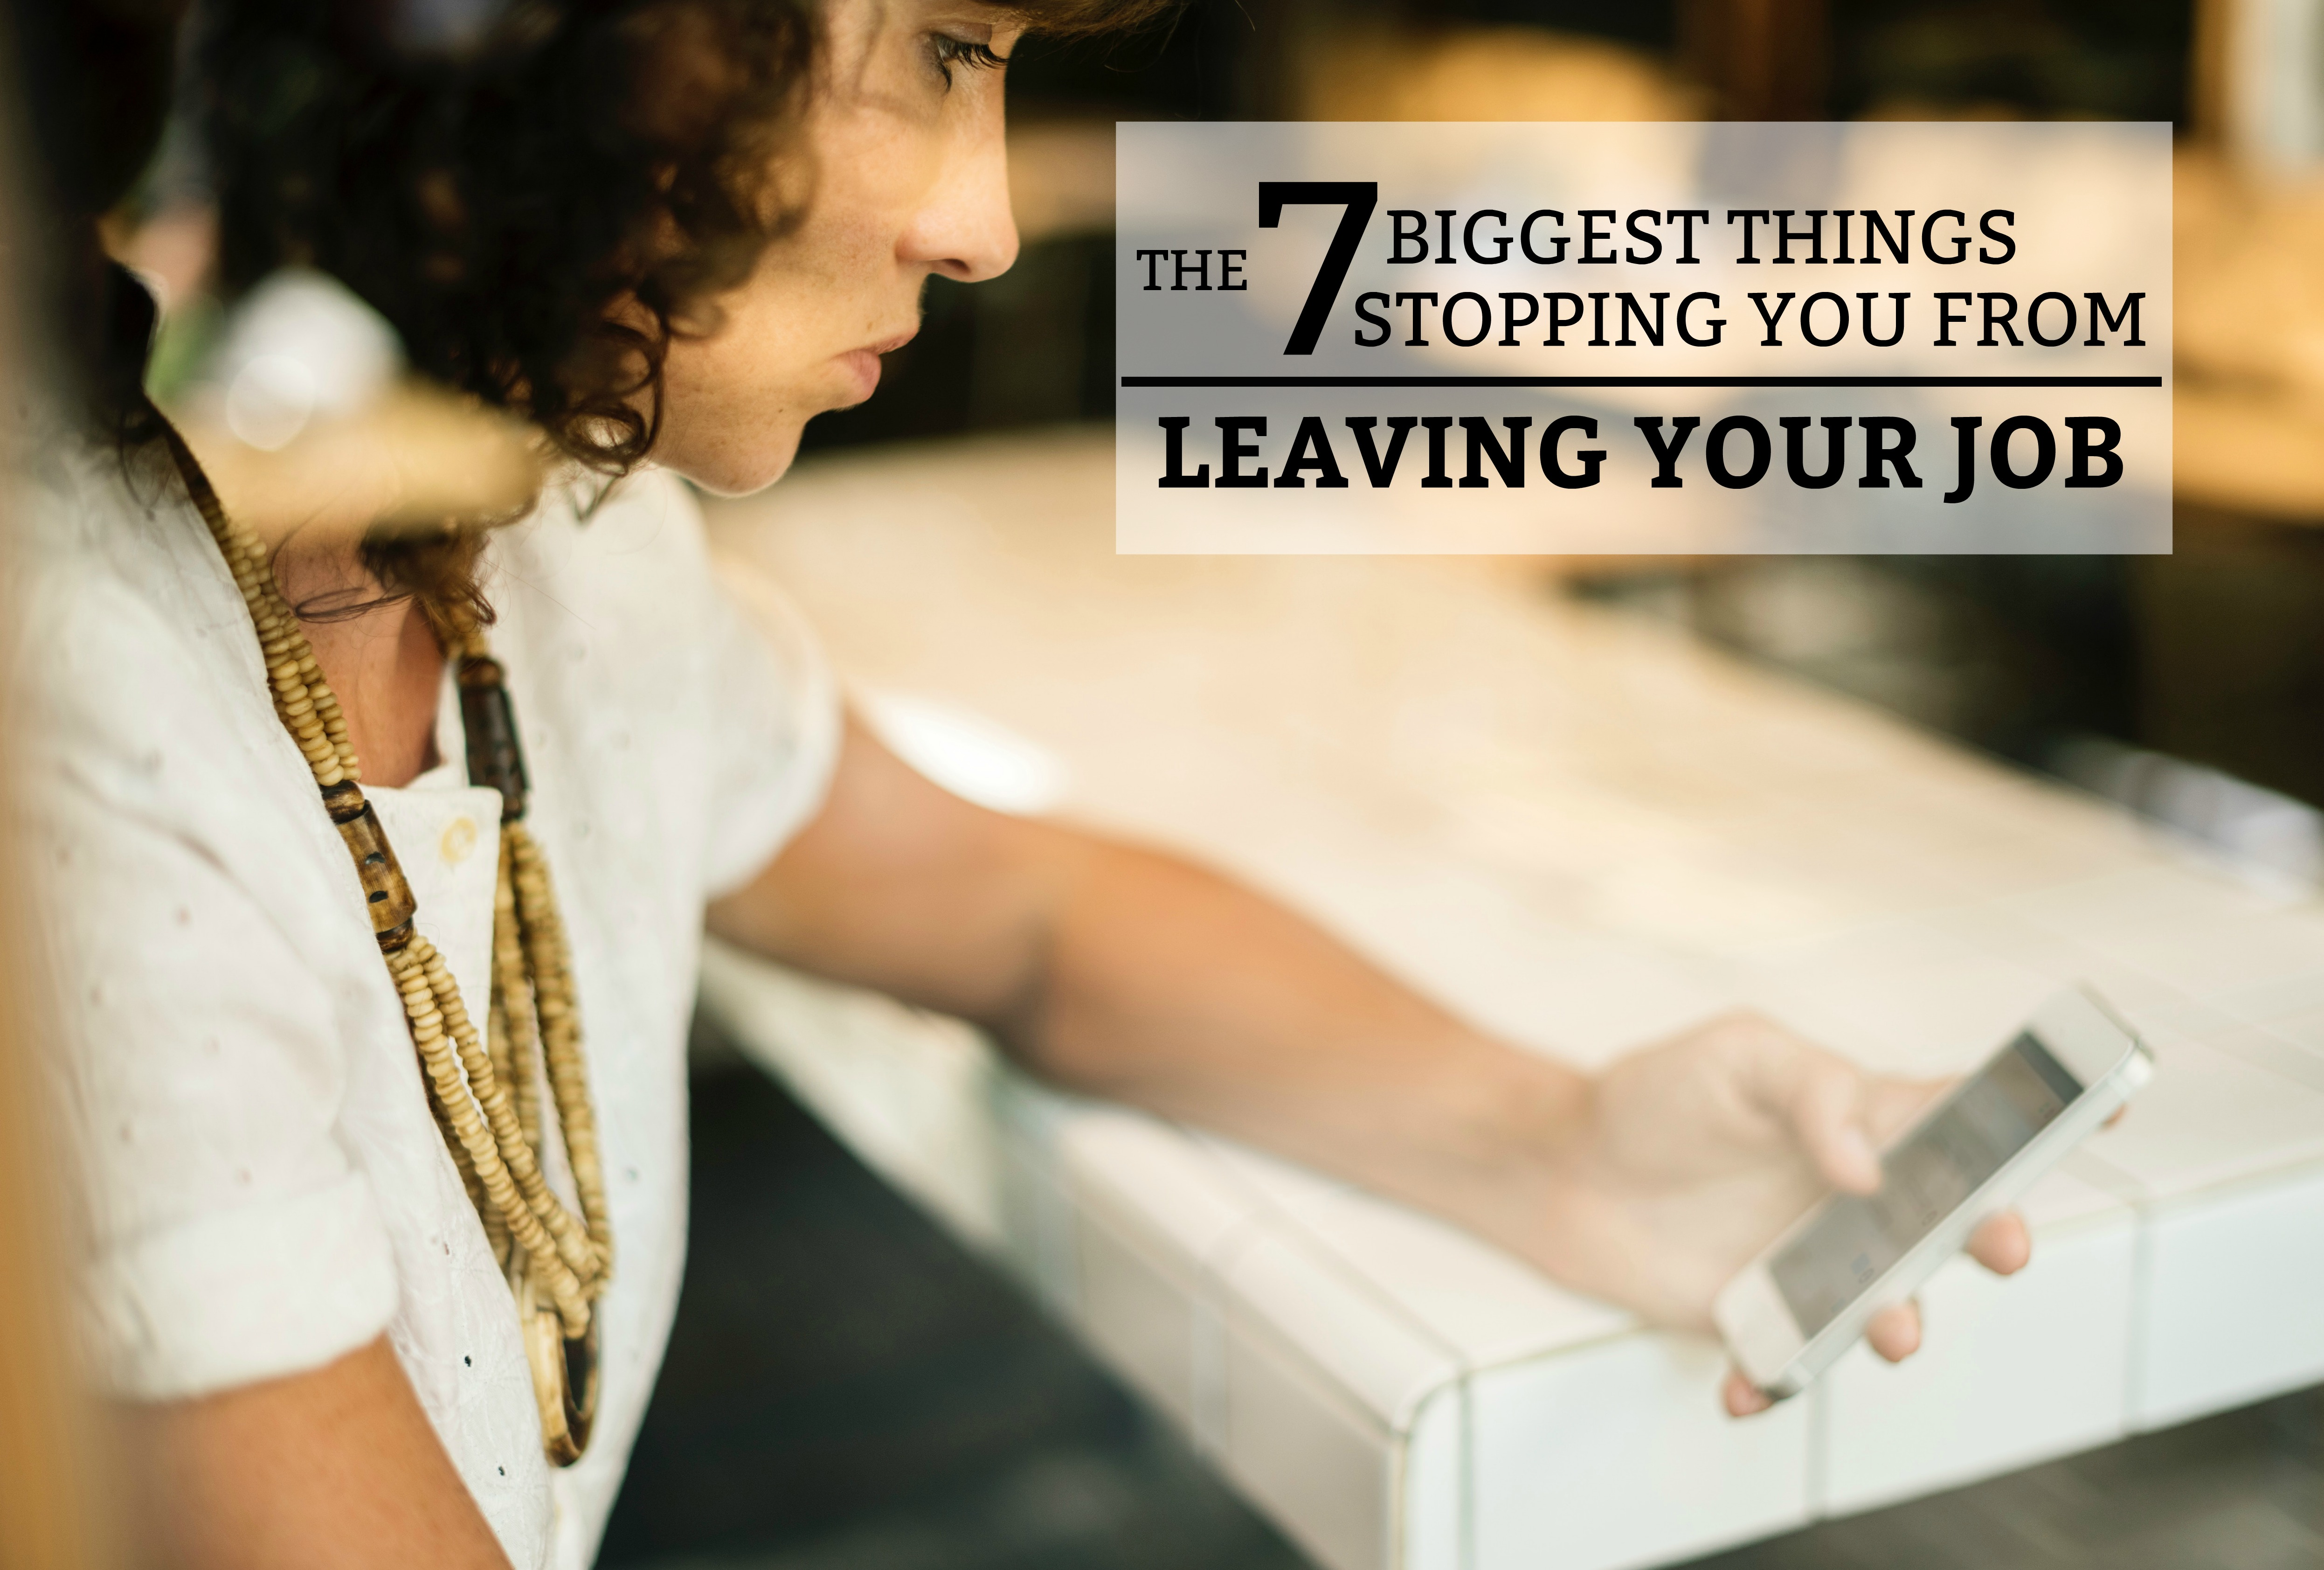 The 7 Biggest Things Stopping You from Leaving Your Job - a guide to identifying the reason why you aren't leaving a job you dislike. www.tradingaverage.com